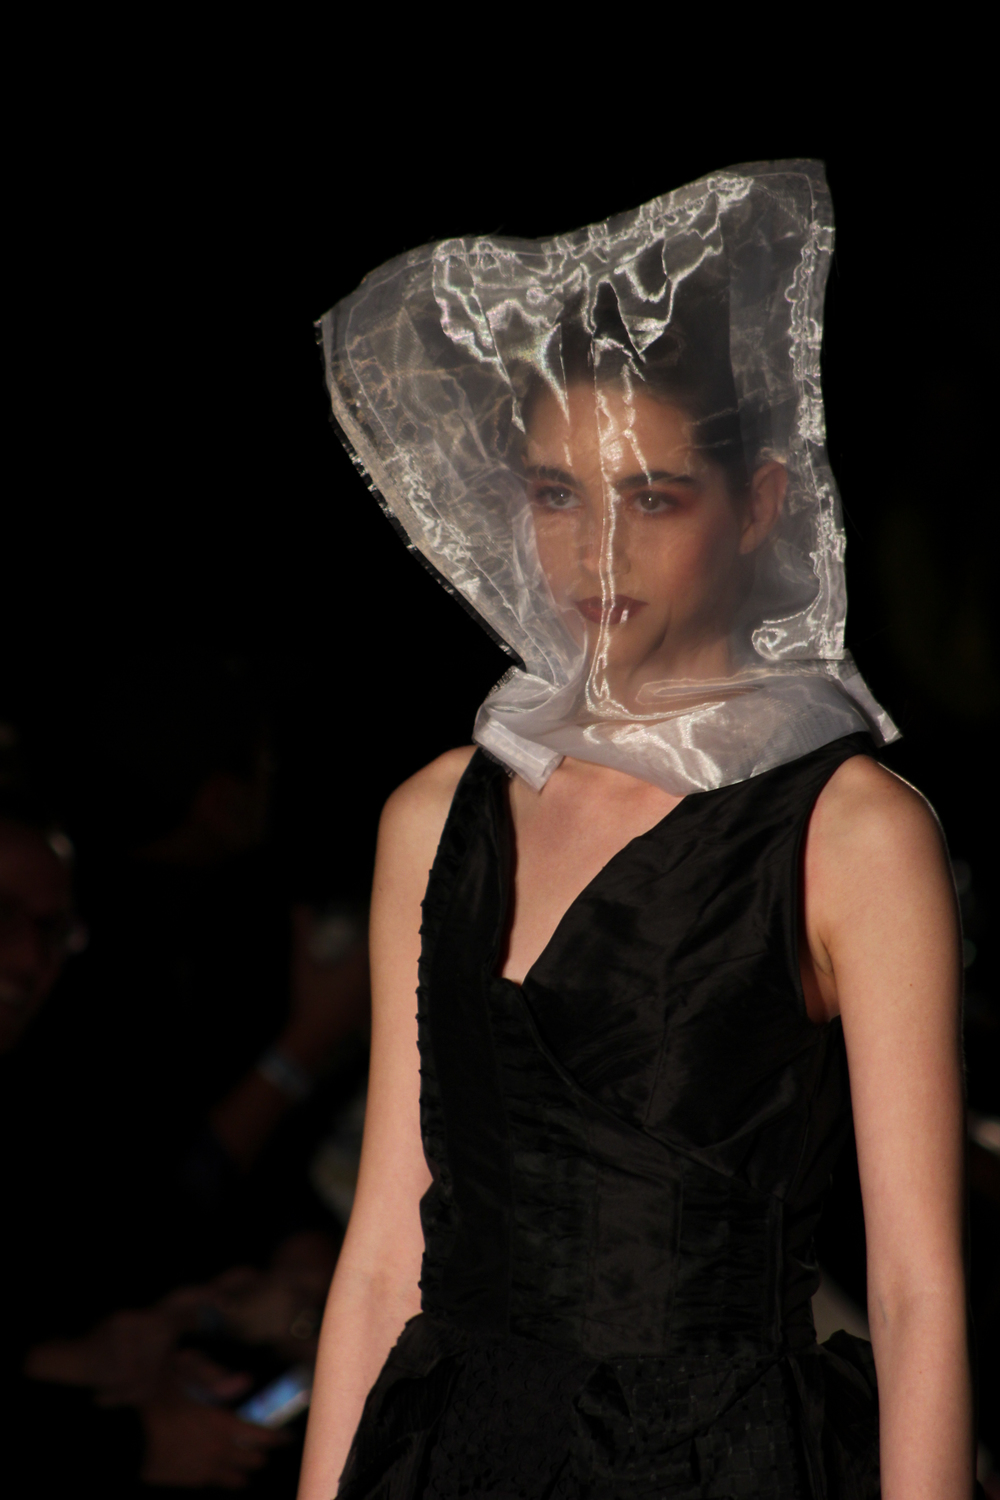 All focus is on Gail Chovan's dress as the model's face is obscured by a transparent bag. Photo by Miranda Chiechi.